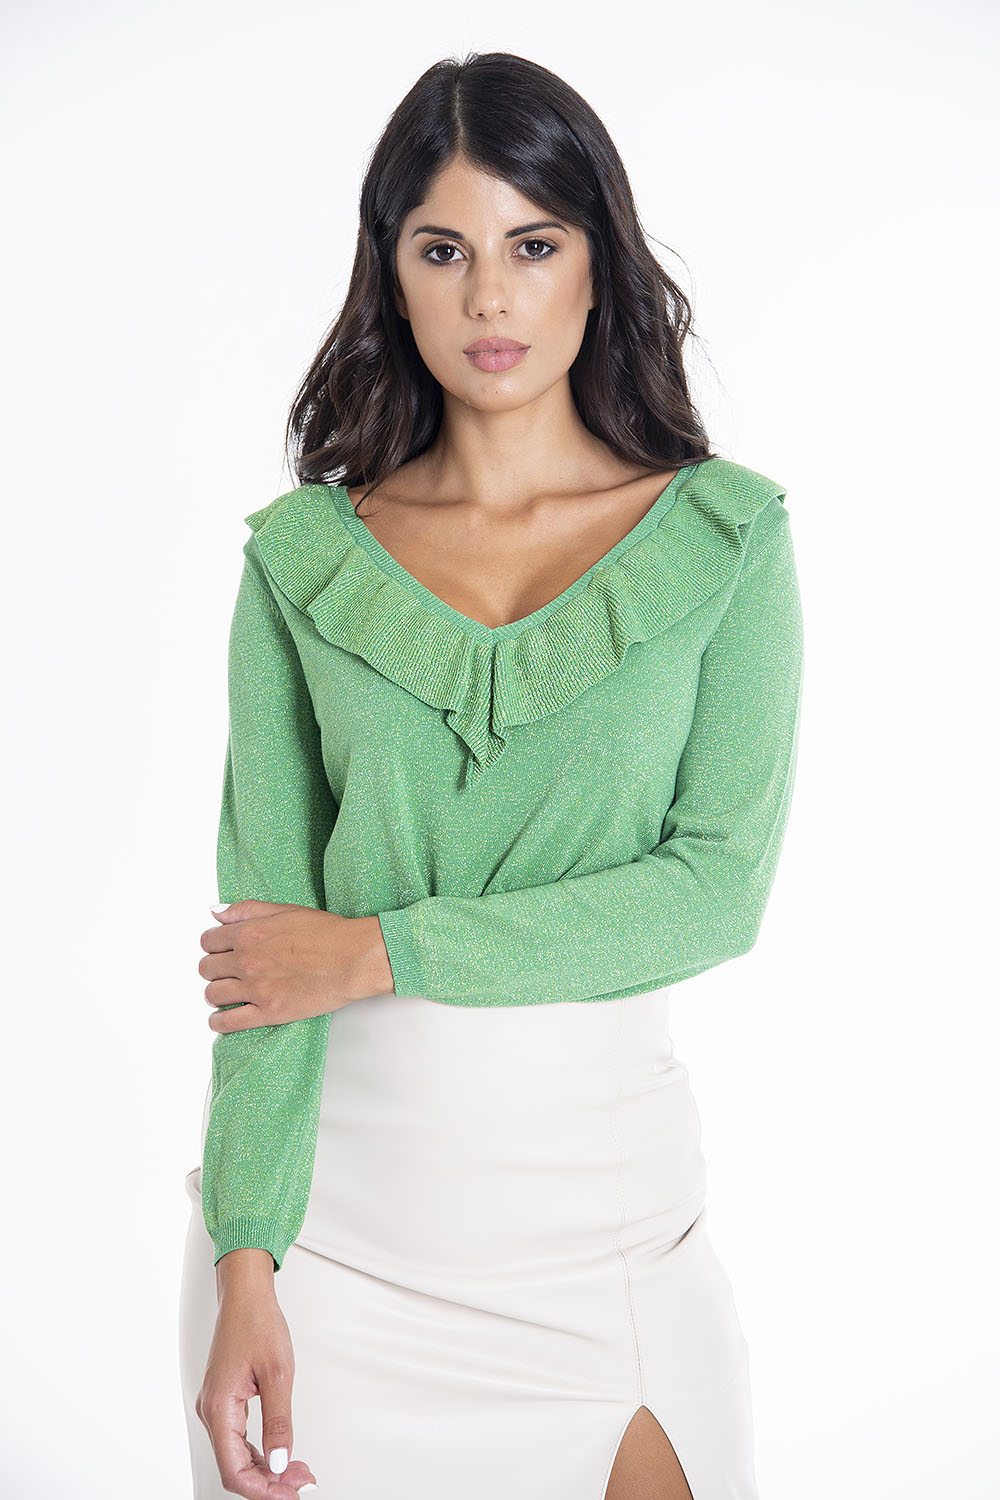 Tensione in sparkle jumper with neck frills